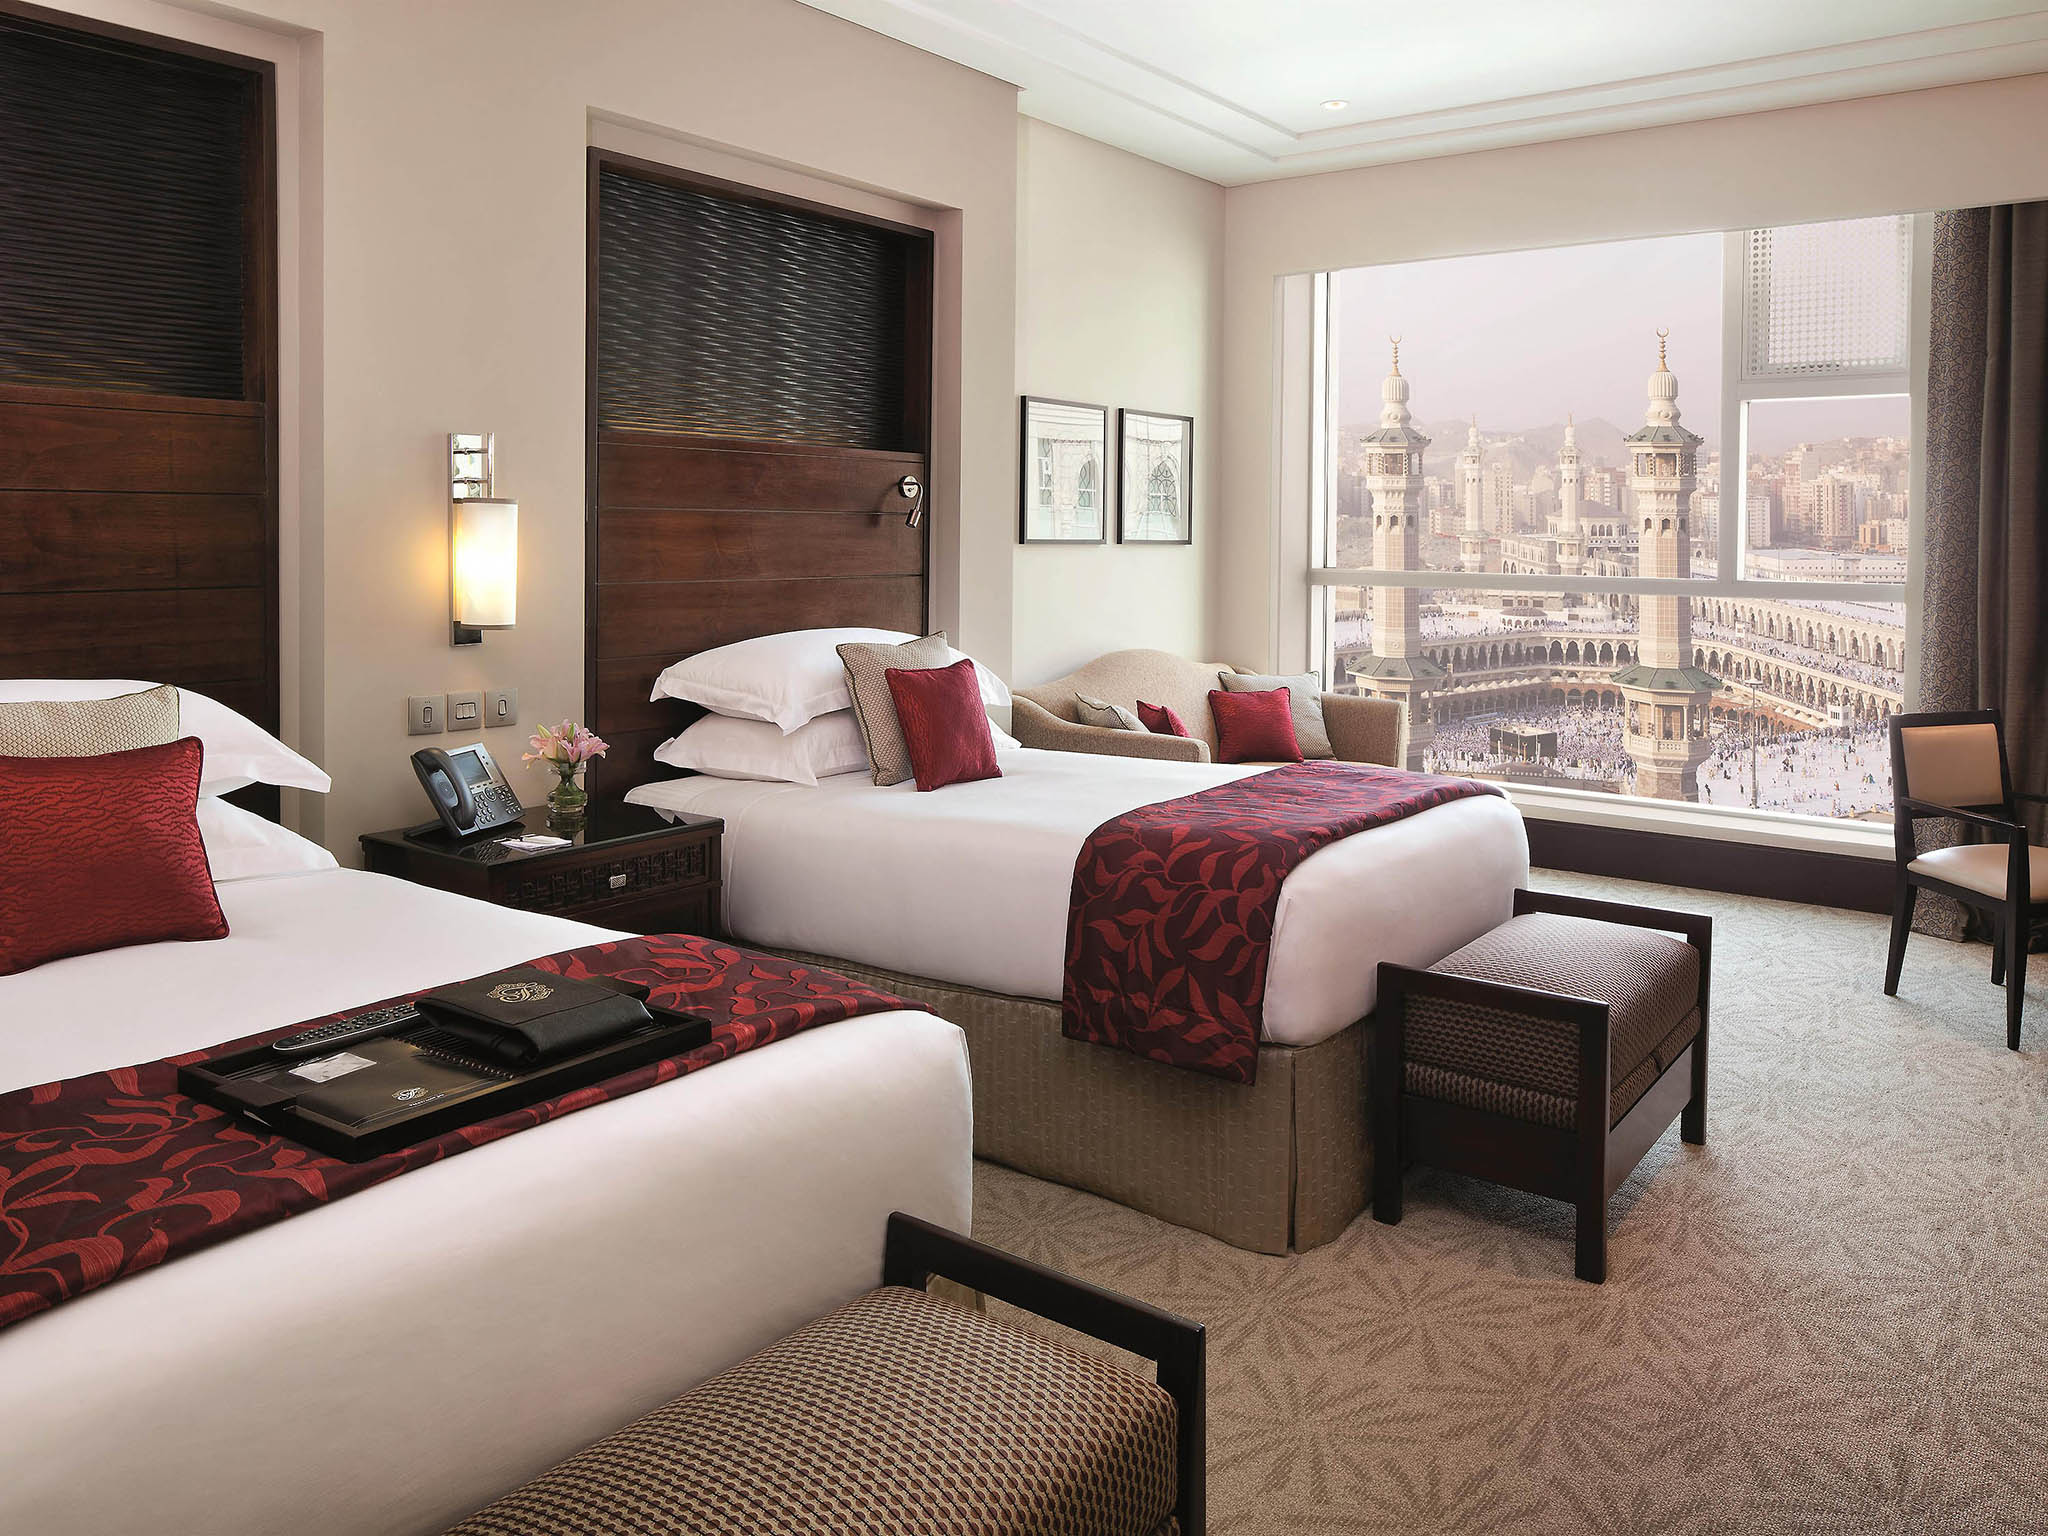 h tel la mecque fairmont makkah clock royal tower. Black Bedroom Furniture Sets. Home Design Ideas